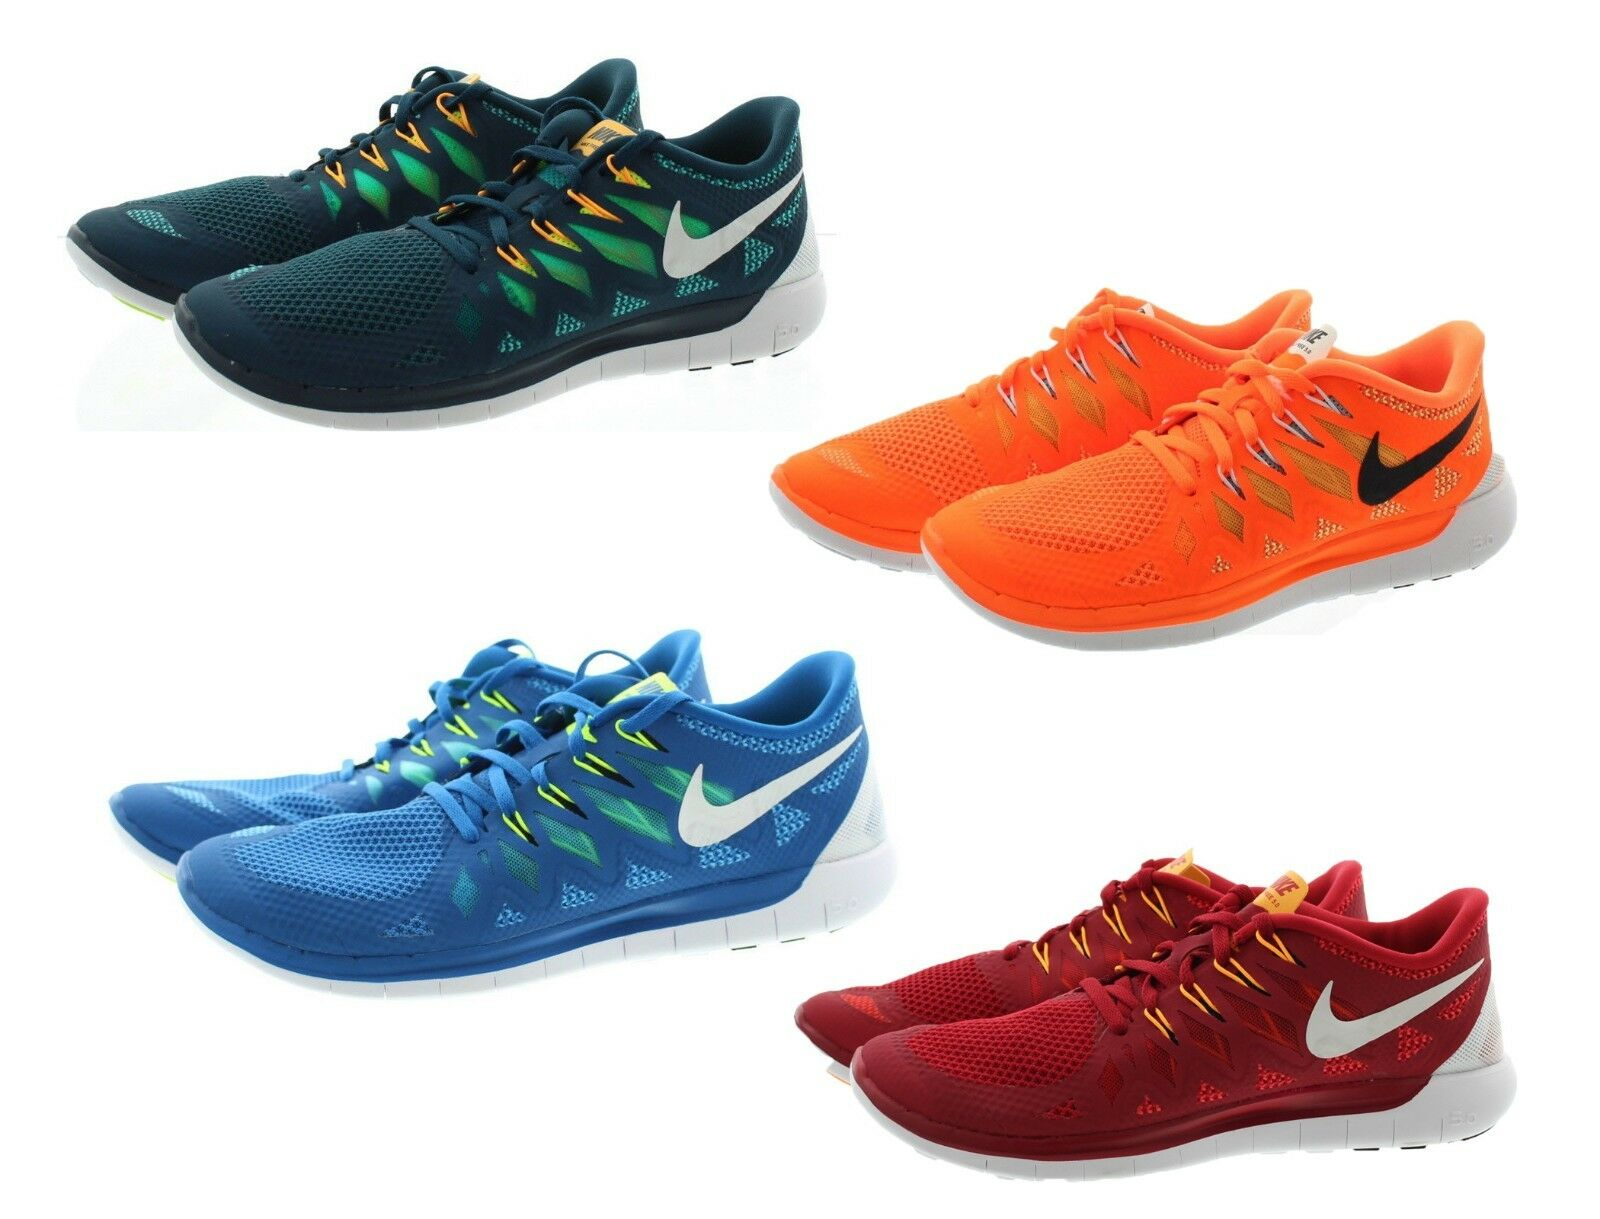 Nike 642198 Mens Free 5.0 Athletic Performance Running shoes Sneakers